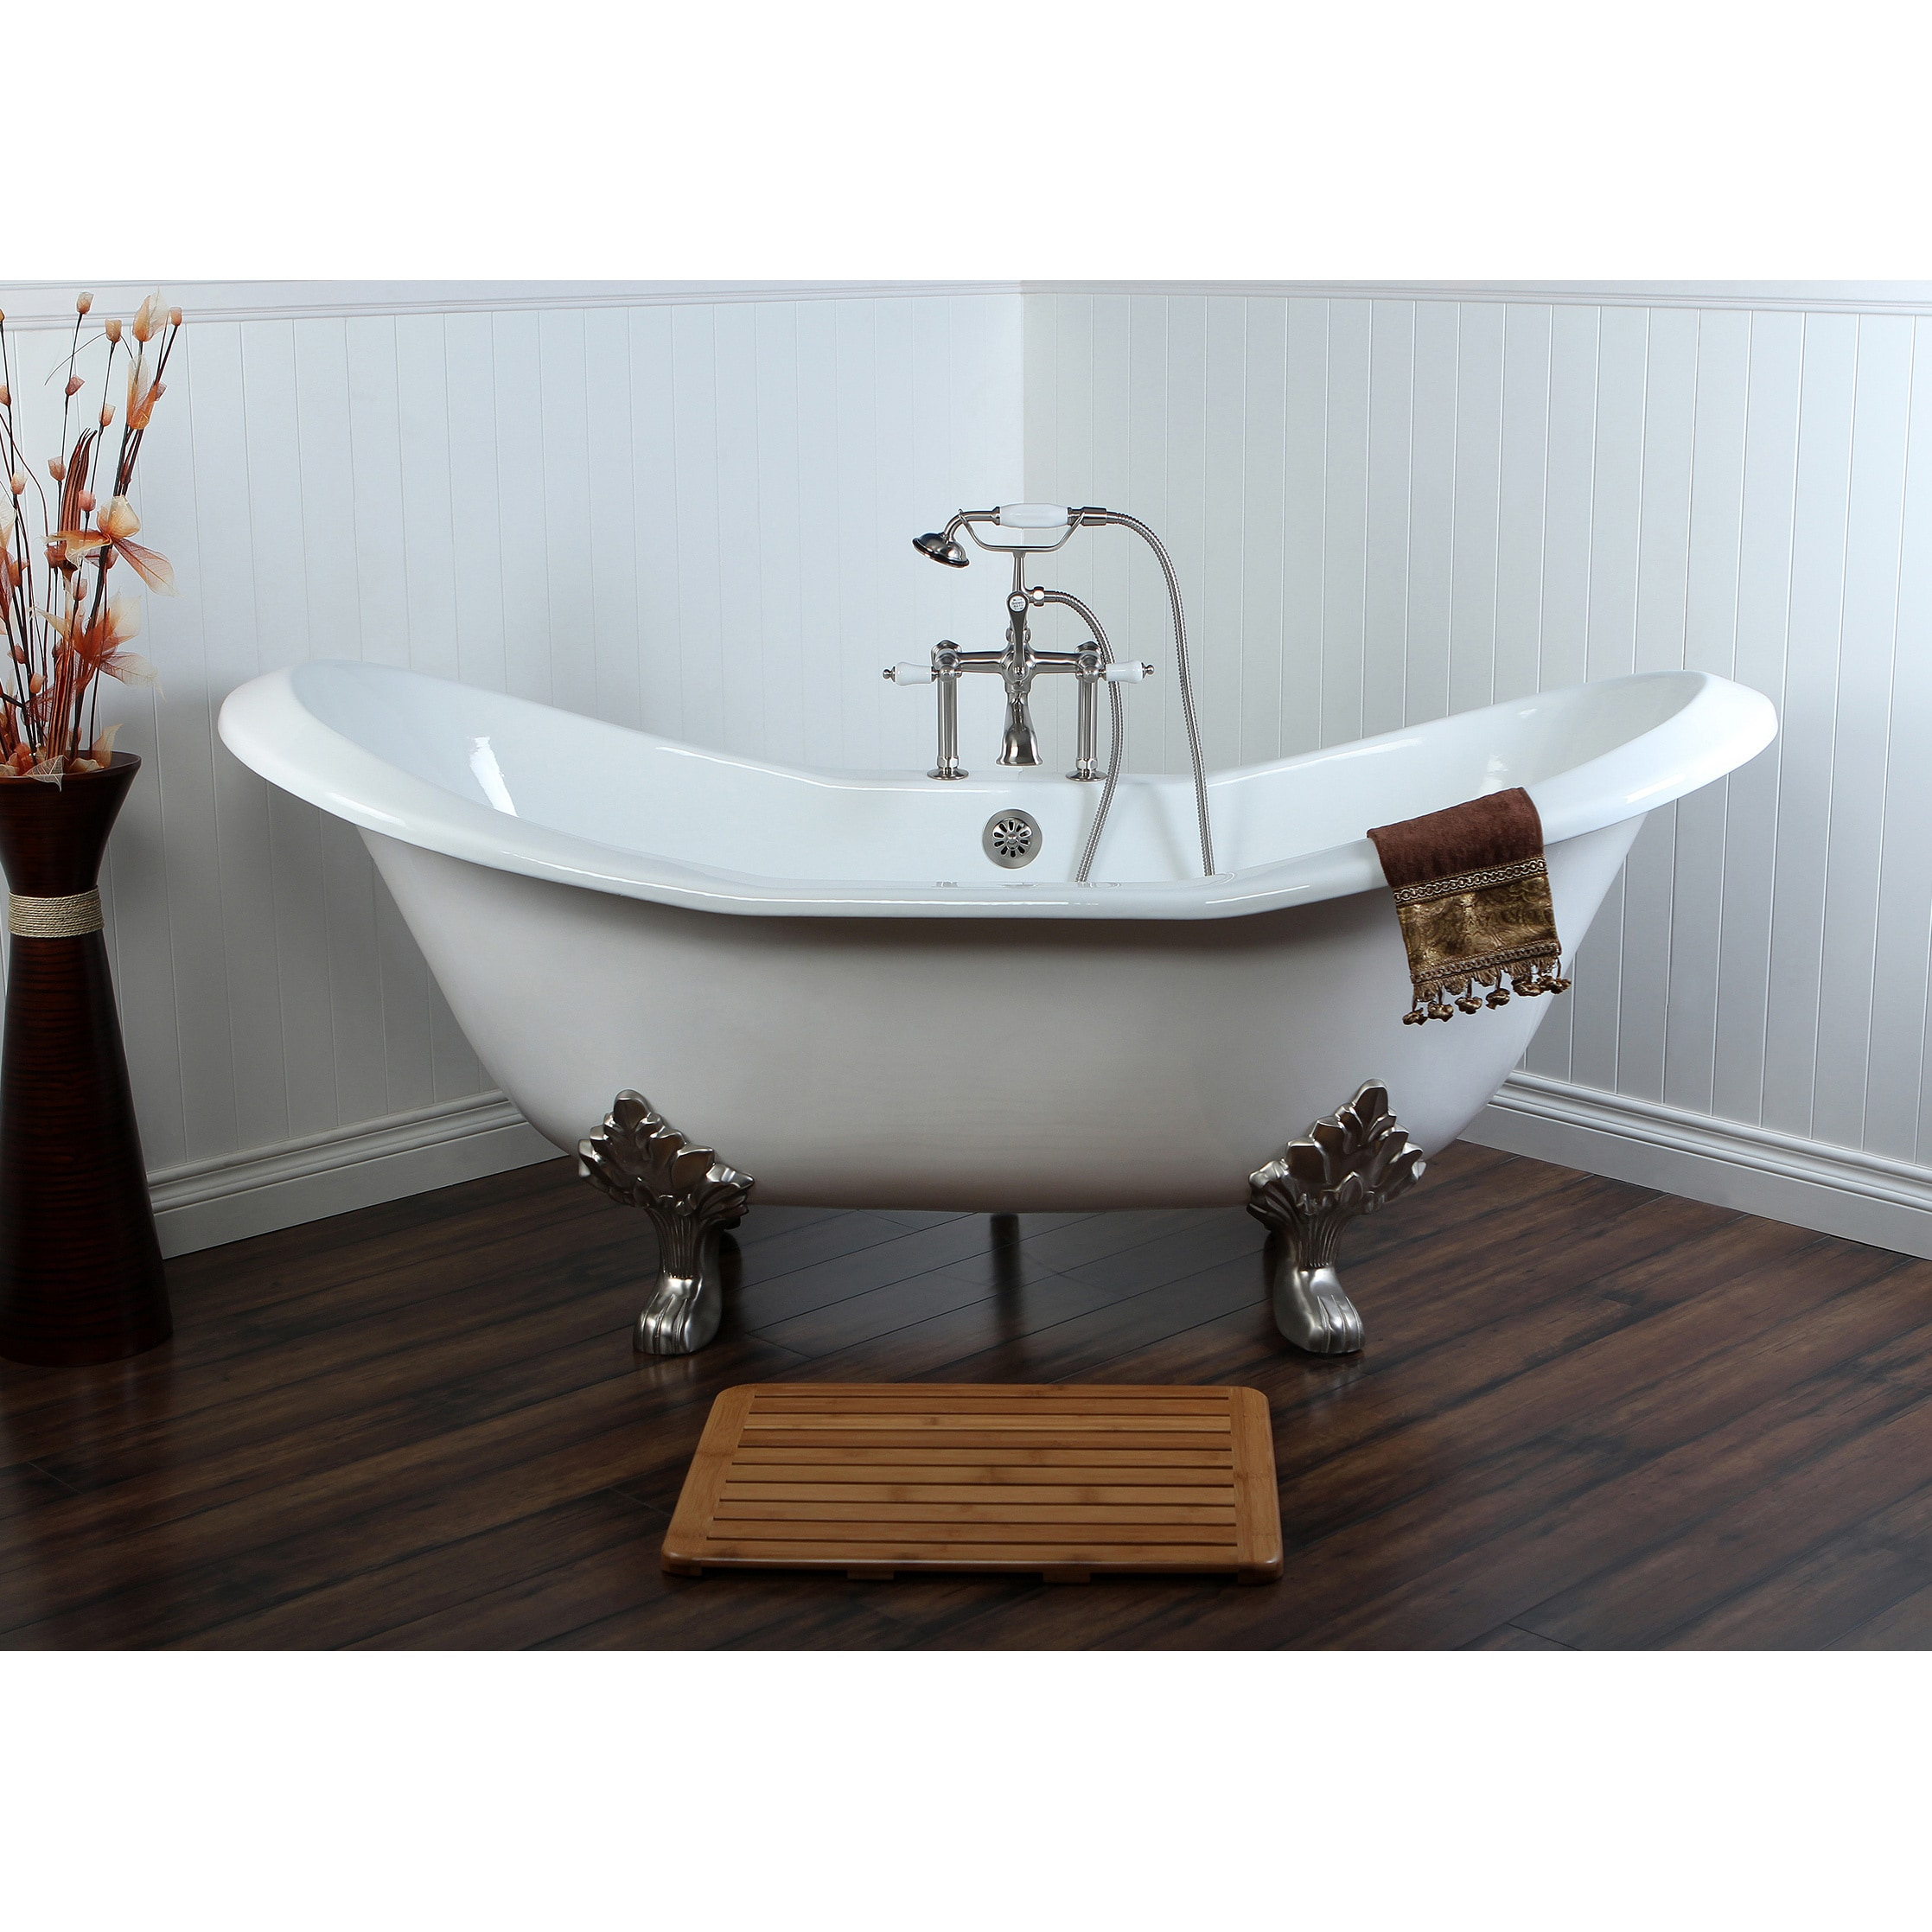 Delicieux Shop Double Slipper 72 Inch Cast Iron Clawfoot Bathtub   Free Shipping  Today   Overstock.com   8075255